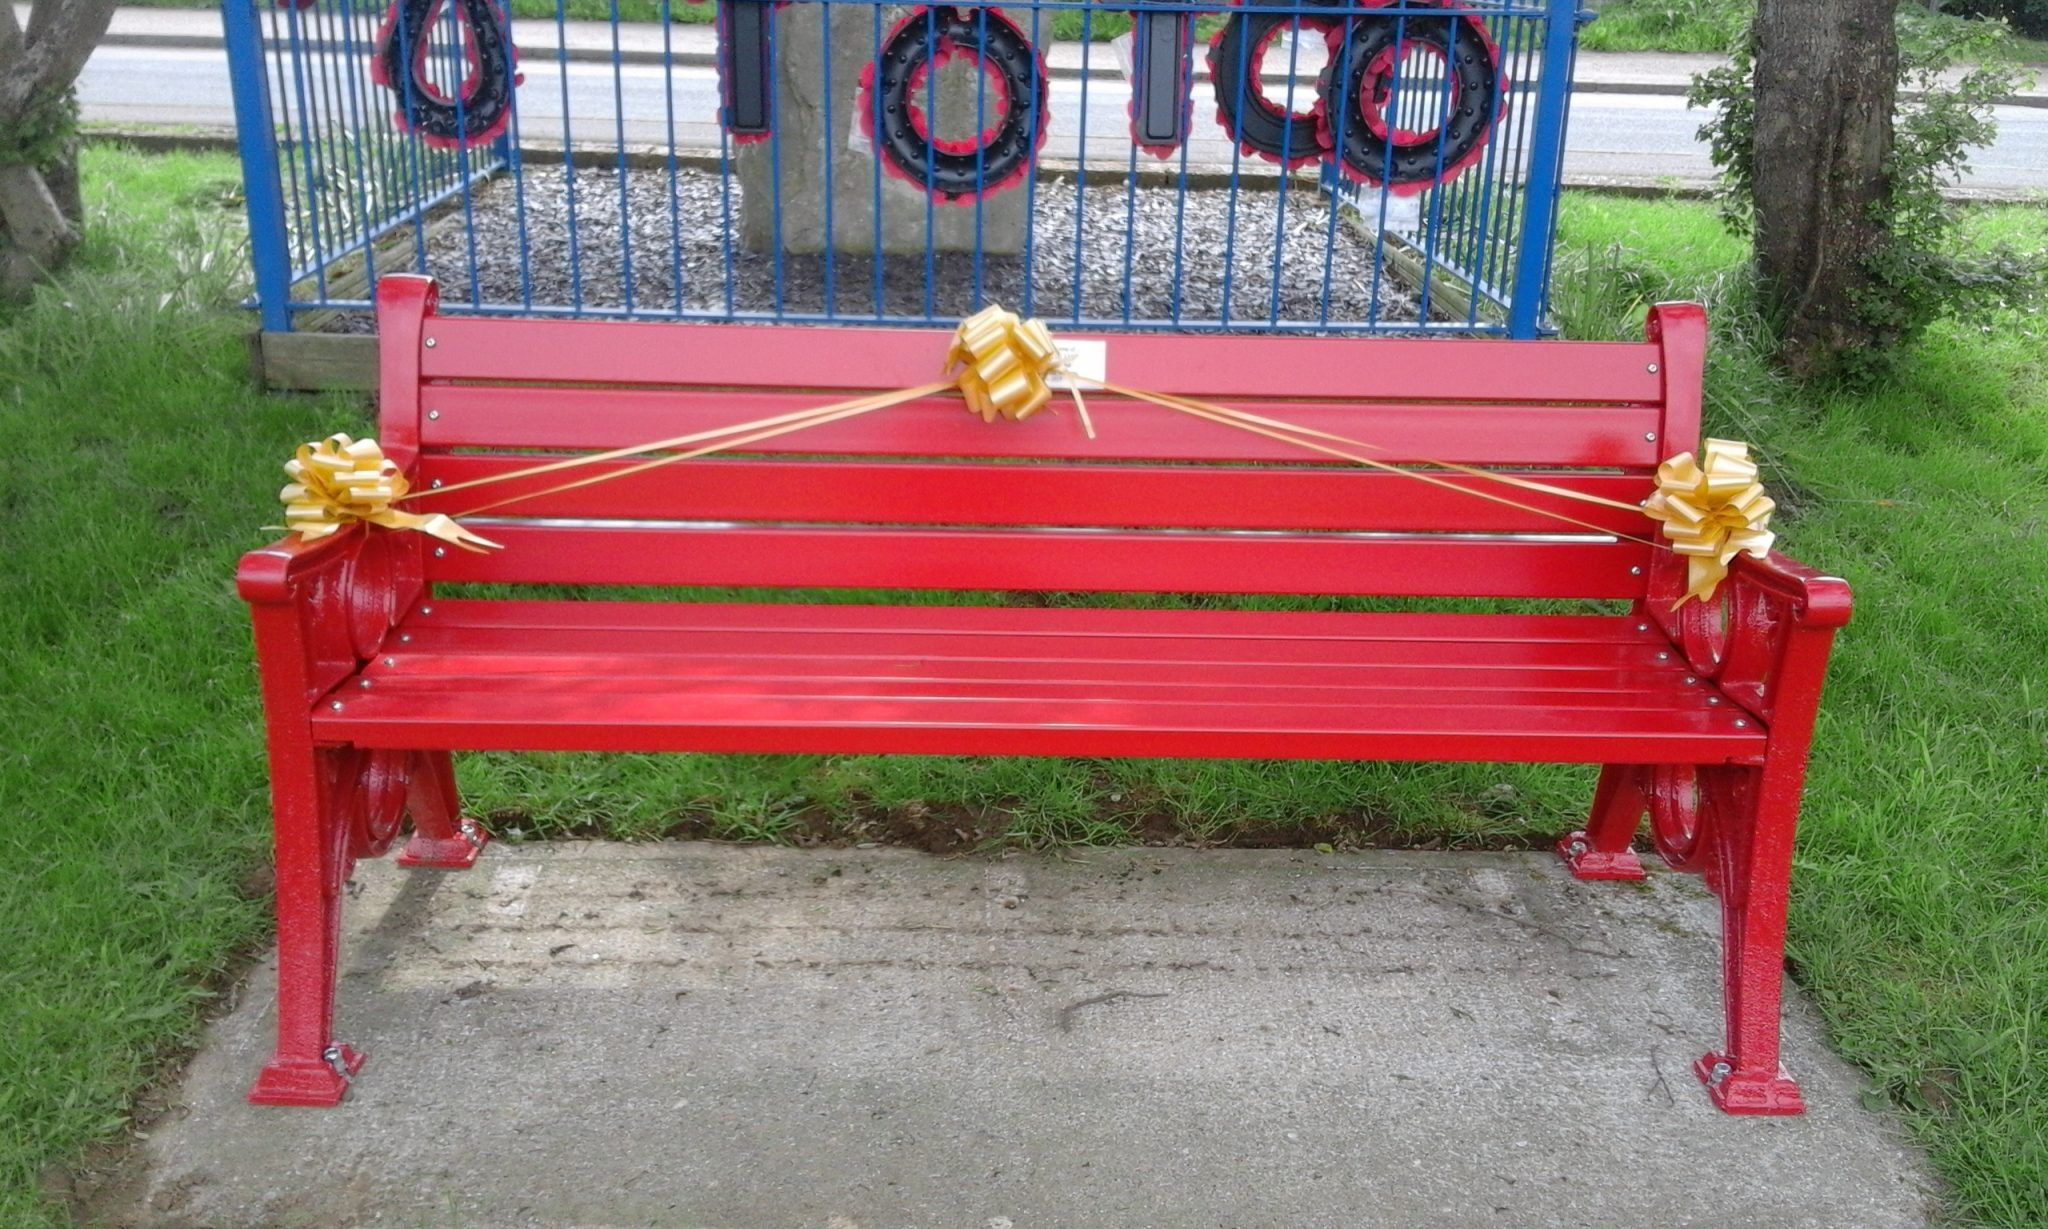 Photograph of the red memorial bench